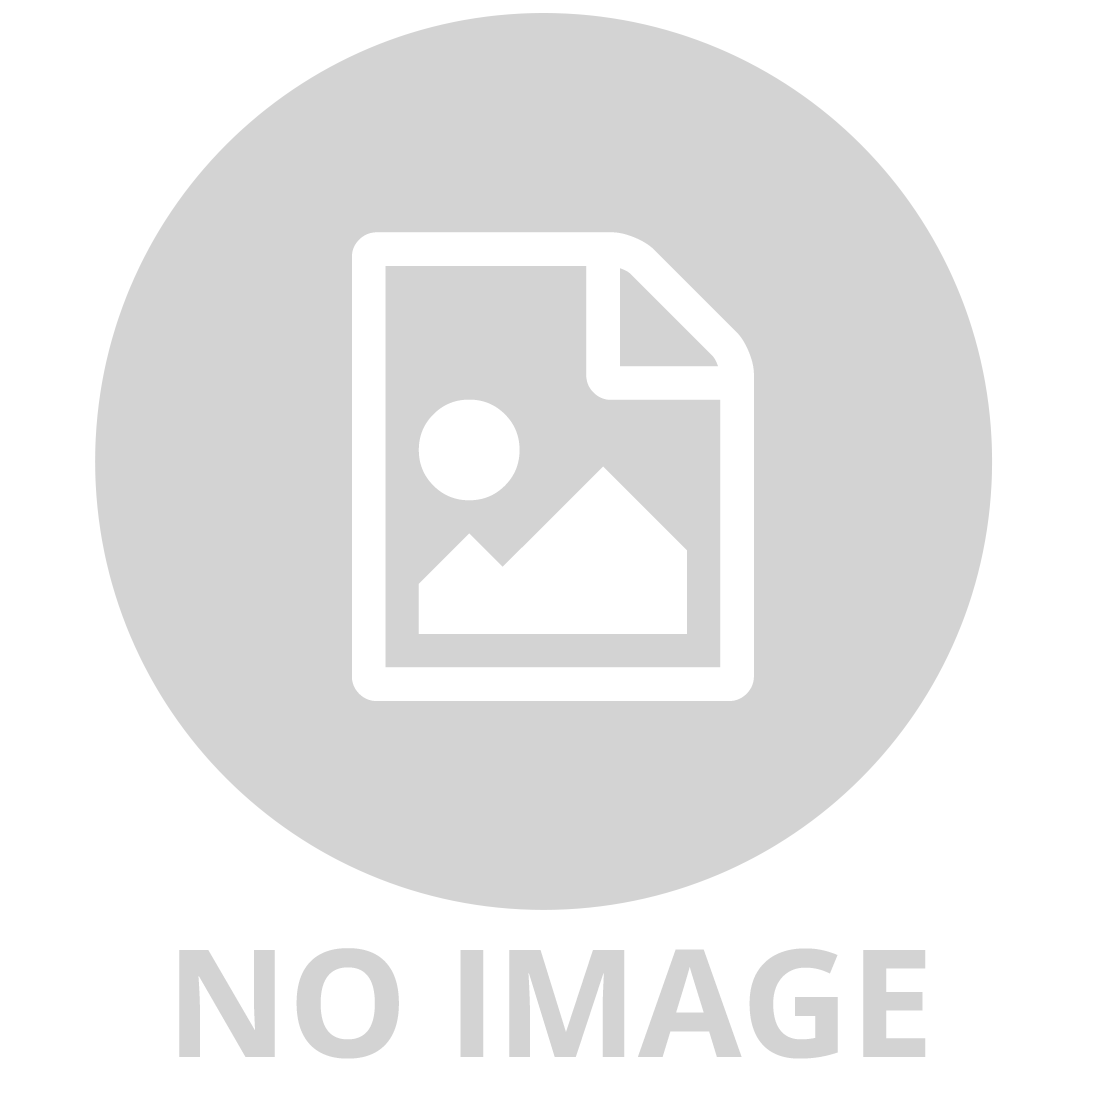 THOMAS 7 fRIENDS TRACK MASTER - STEELWORKS HURRICANE